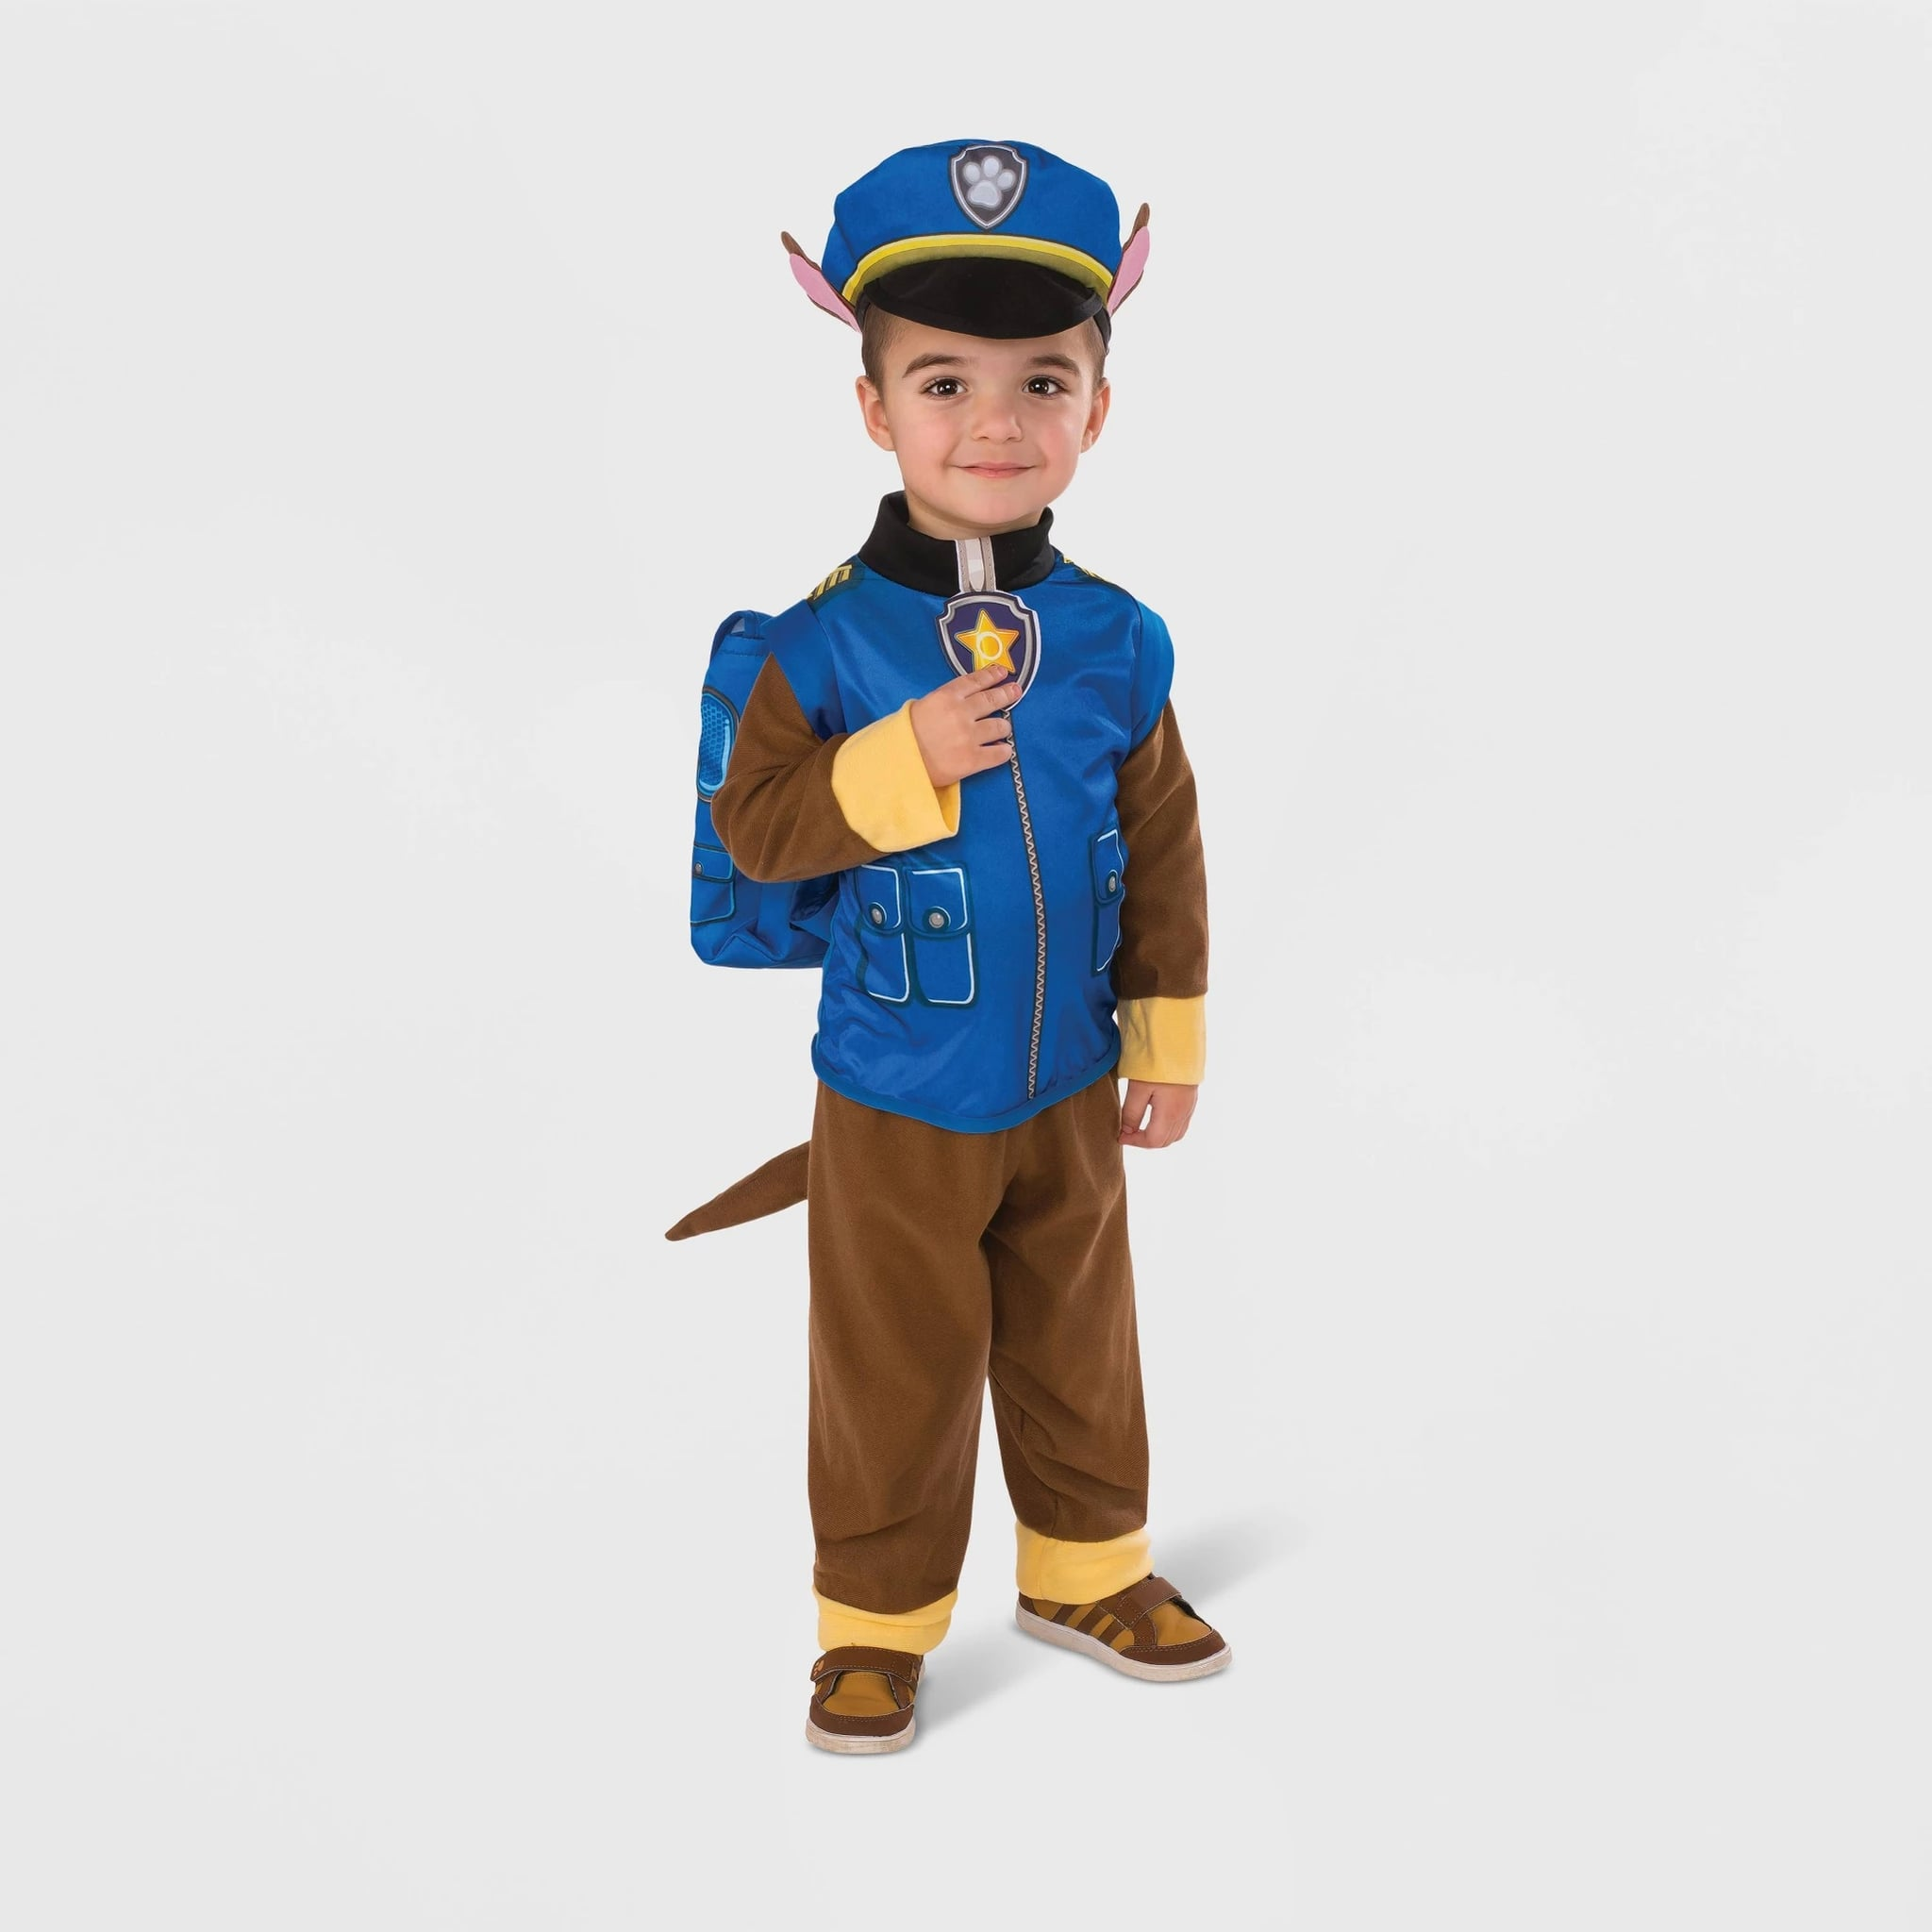 Best Target Halloween Costumes For Toddlers Popsugar Family Buy marvel costumes, become a new hero in the life of a certain character.just choose your favourite superhero costume. halloween costumes for toddlers